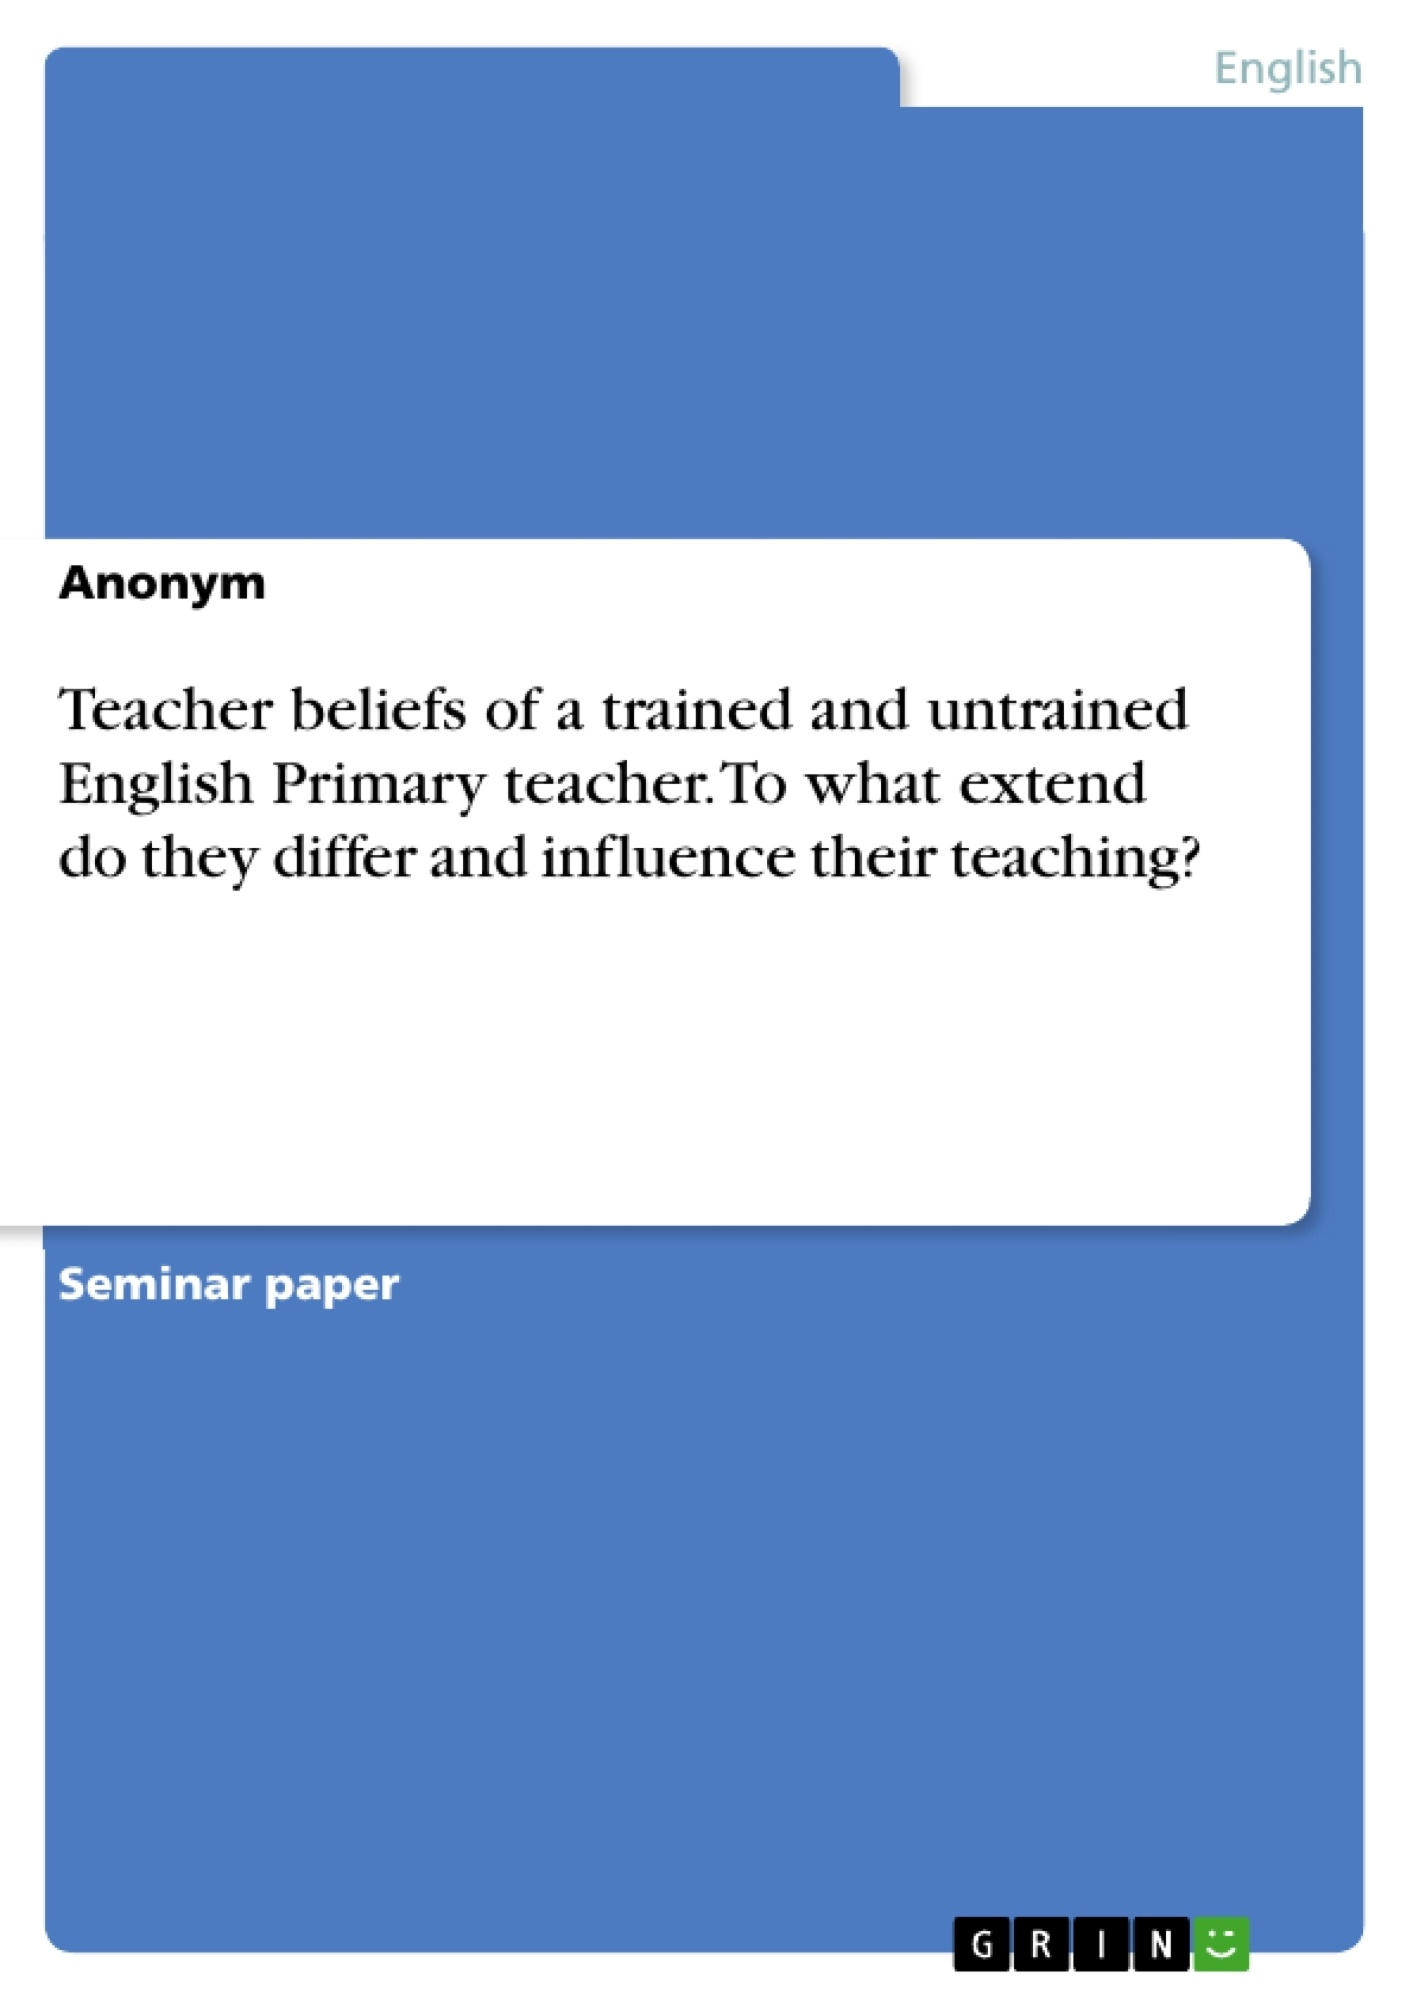 Title: Teacher beliefs of a trained and untrained English Primary teacher. To what extend do they differ and influence their teaching?